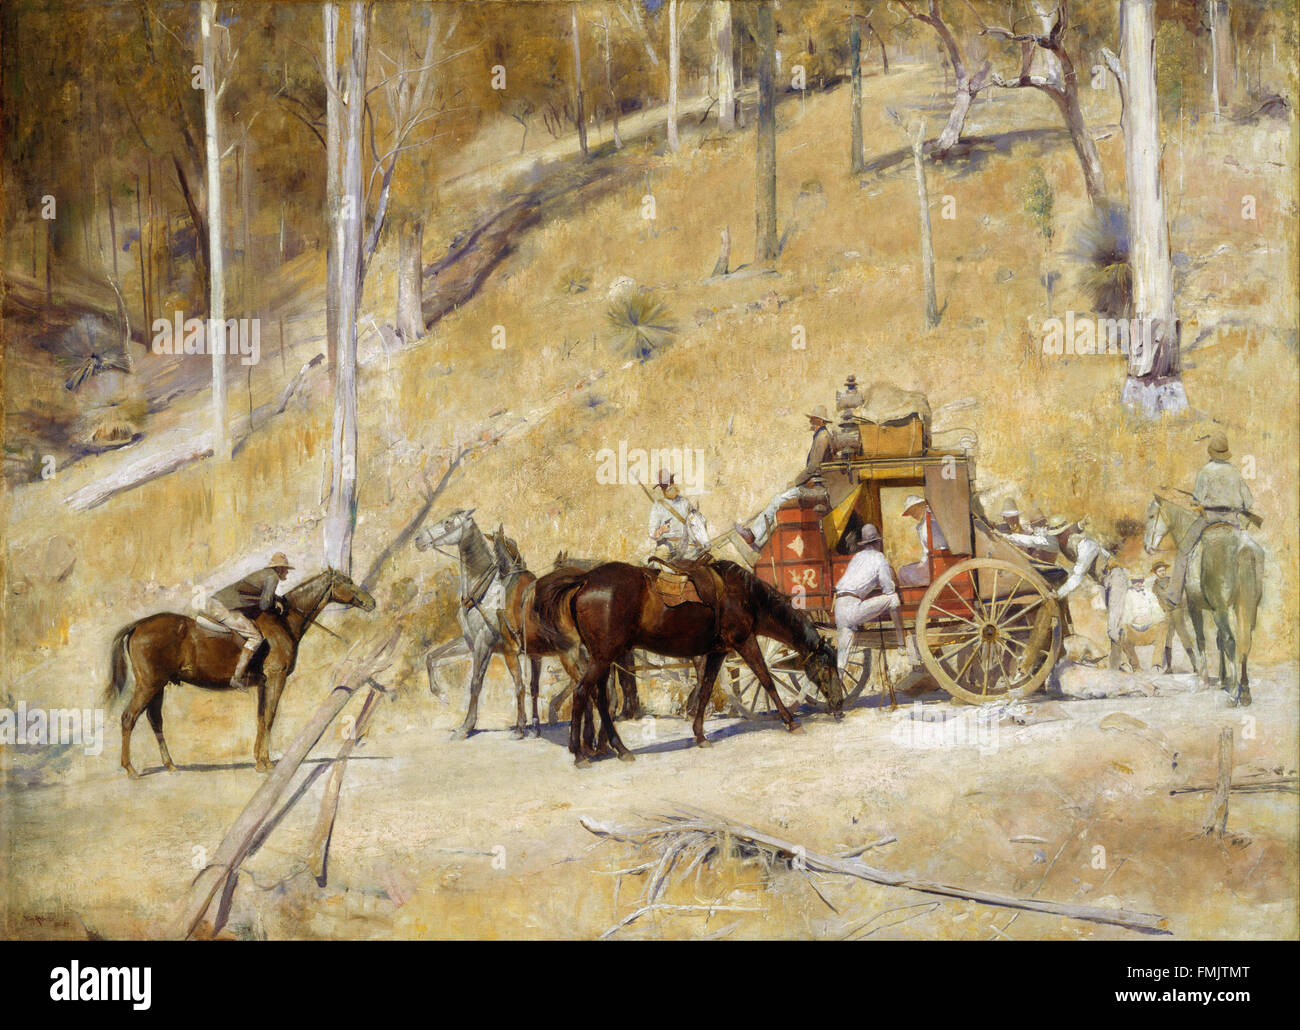 Tom Roberts - Bailed up - Stock Image